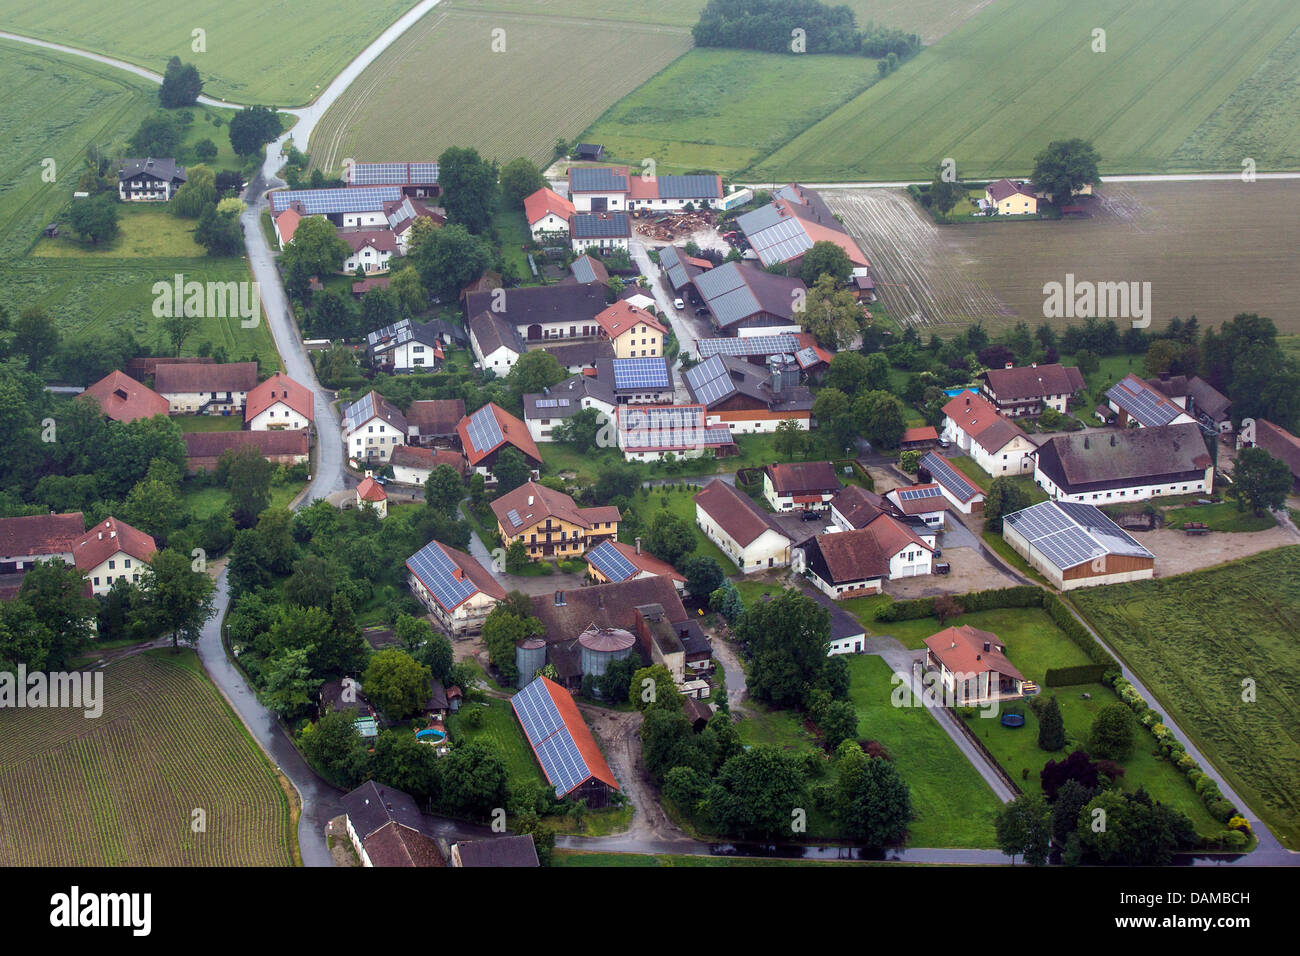 aerial view to village with many solar roofs, Germany, Bavaria, Prenzing - Stock Image